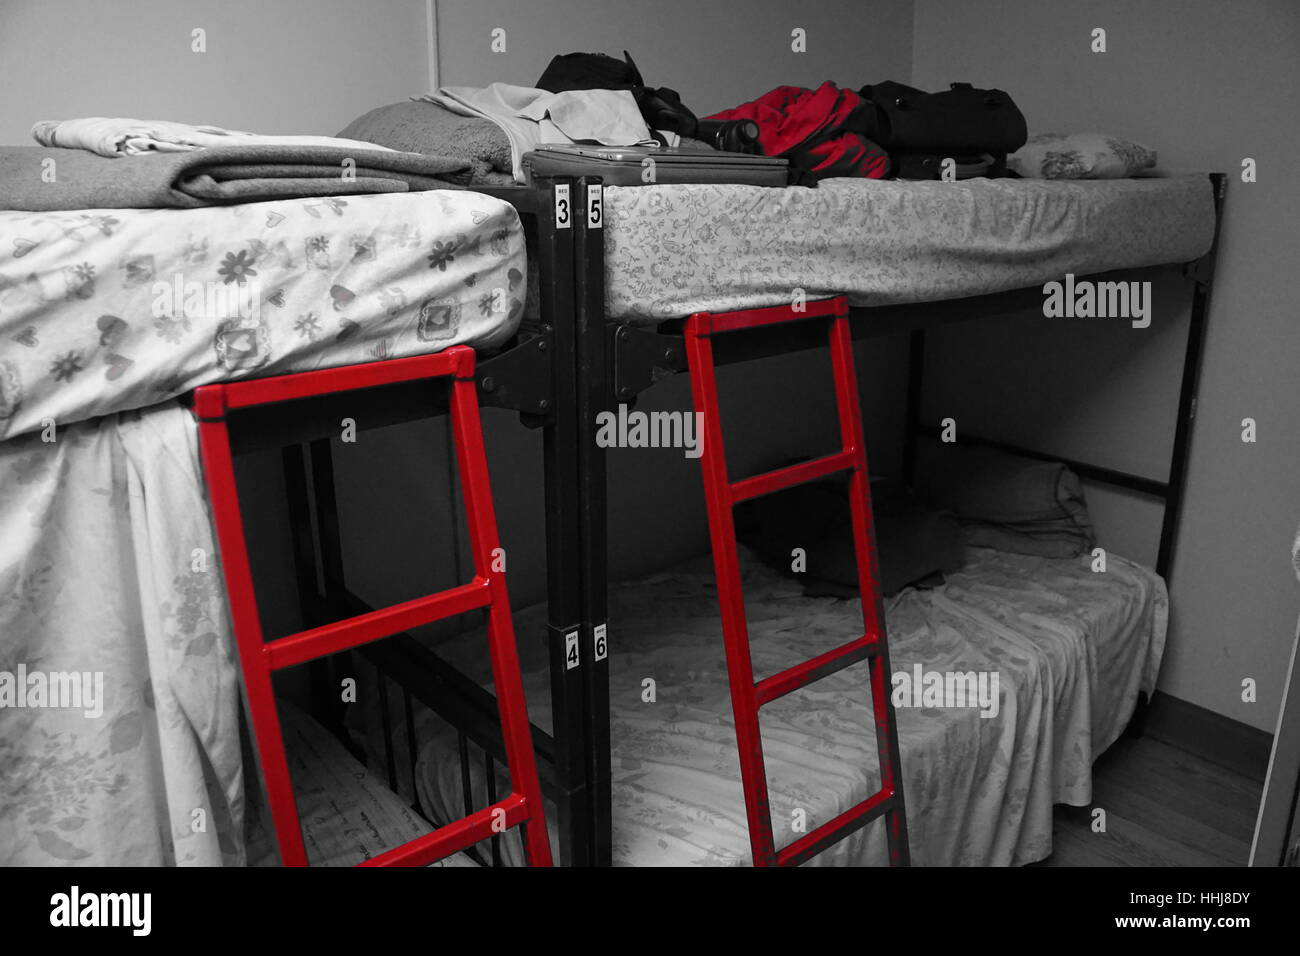 Picture of: Black And White Hostel Dorm Room With Bunk Beds Red Coloured Ladder Stock Photo Alamy